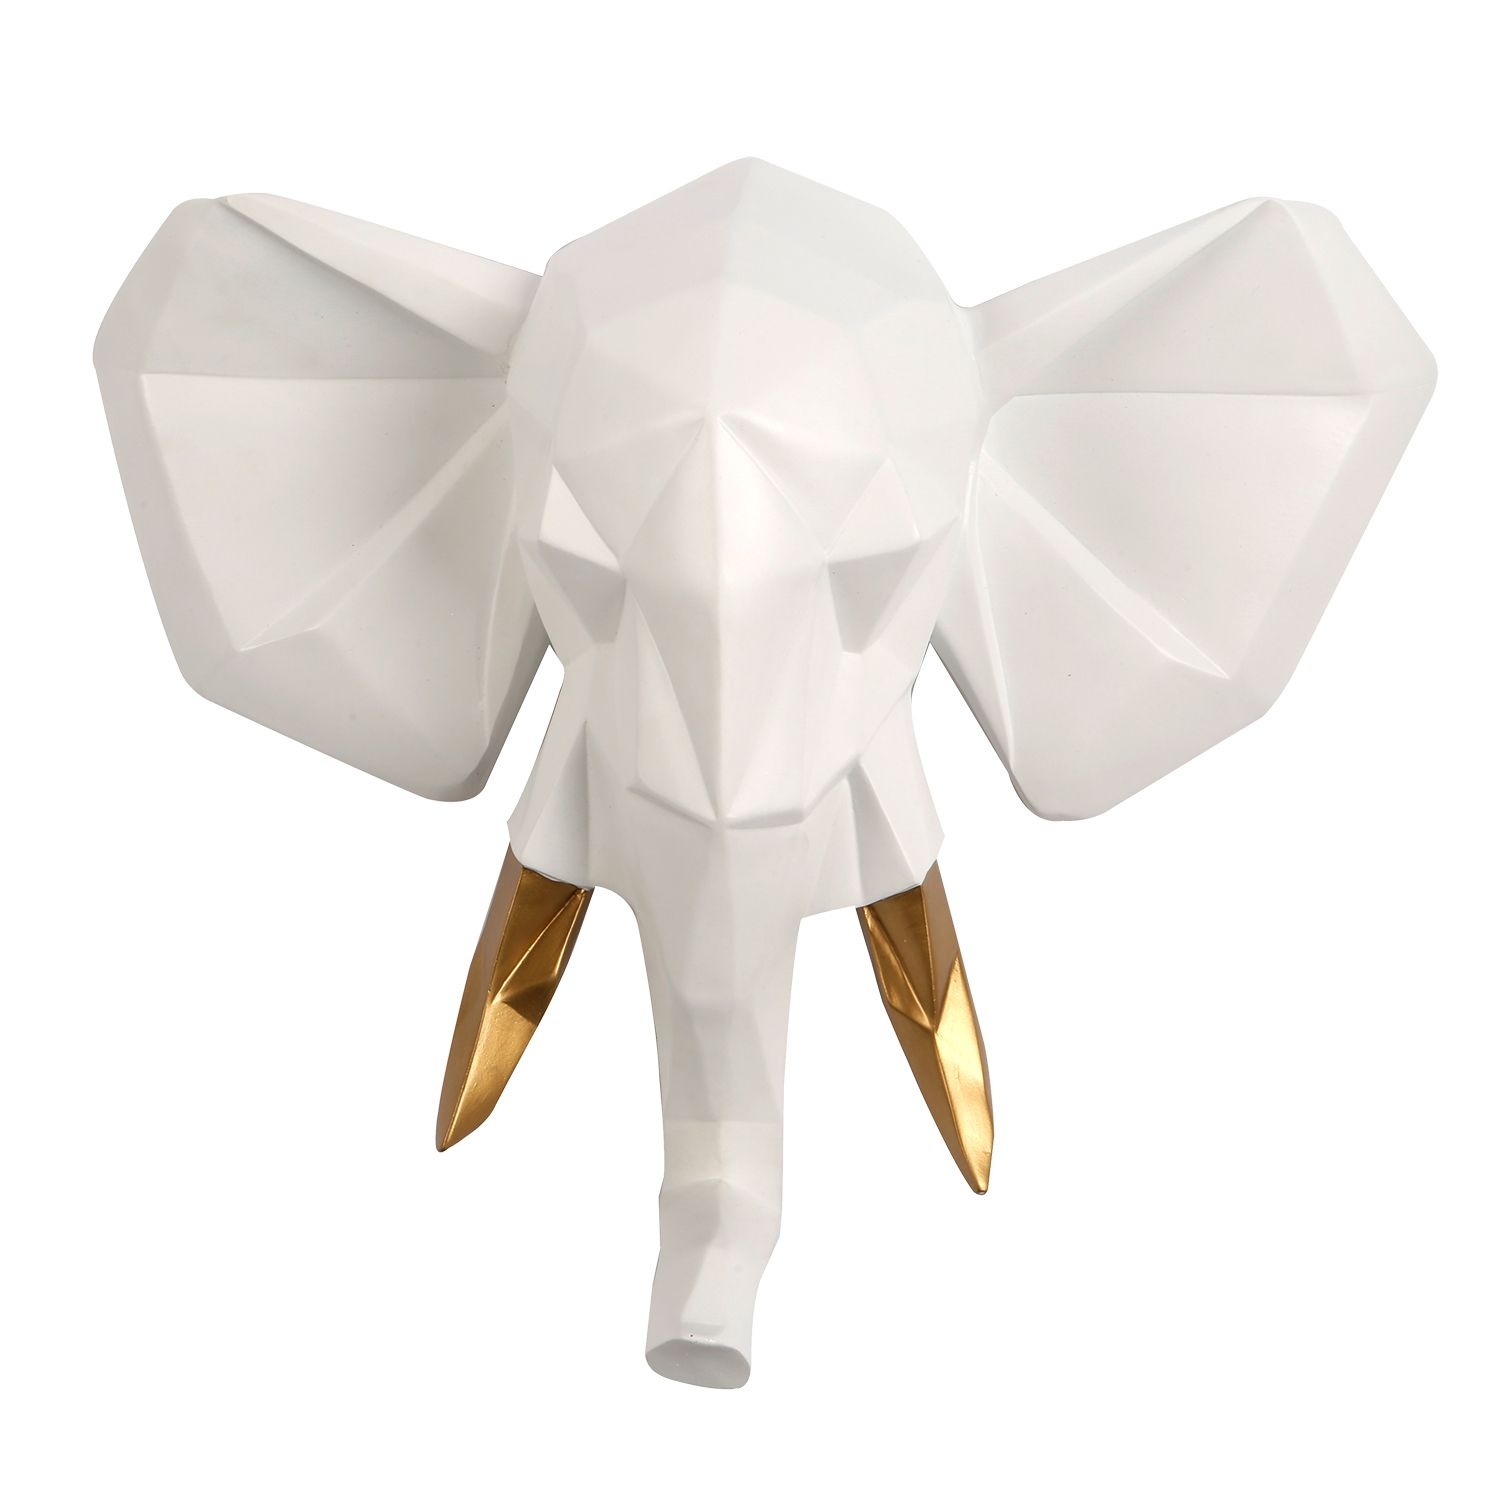 Contemporary Faux Taxidermy White Gold Geometric Elephant Wall Mount Sculpture Art Decorations Home Idea